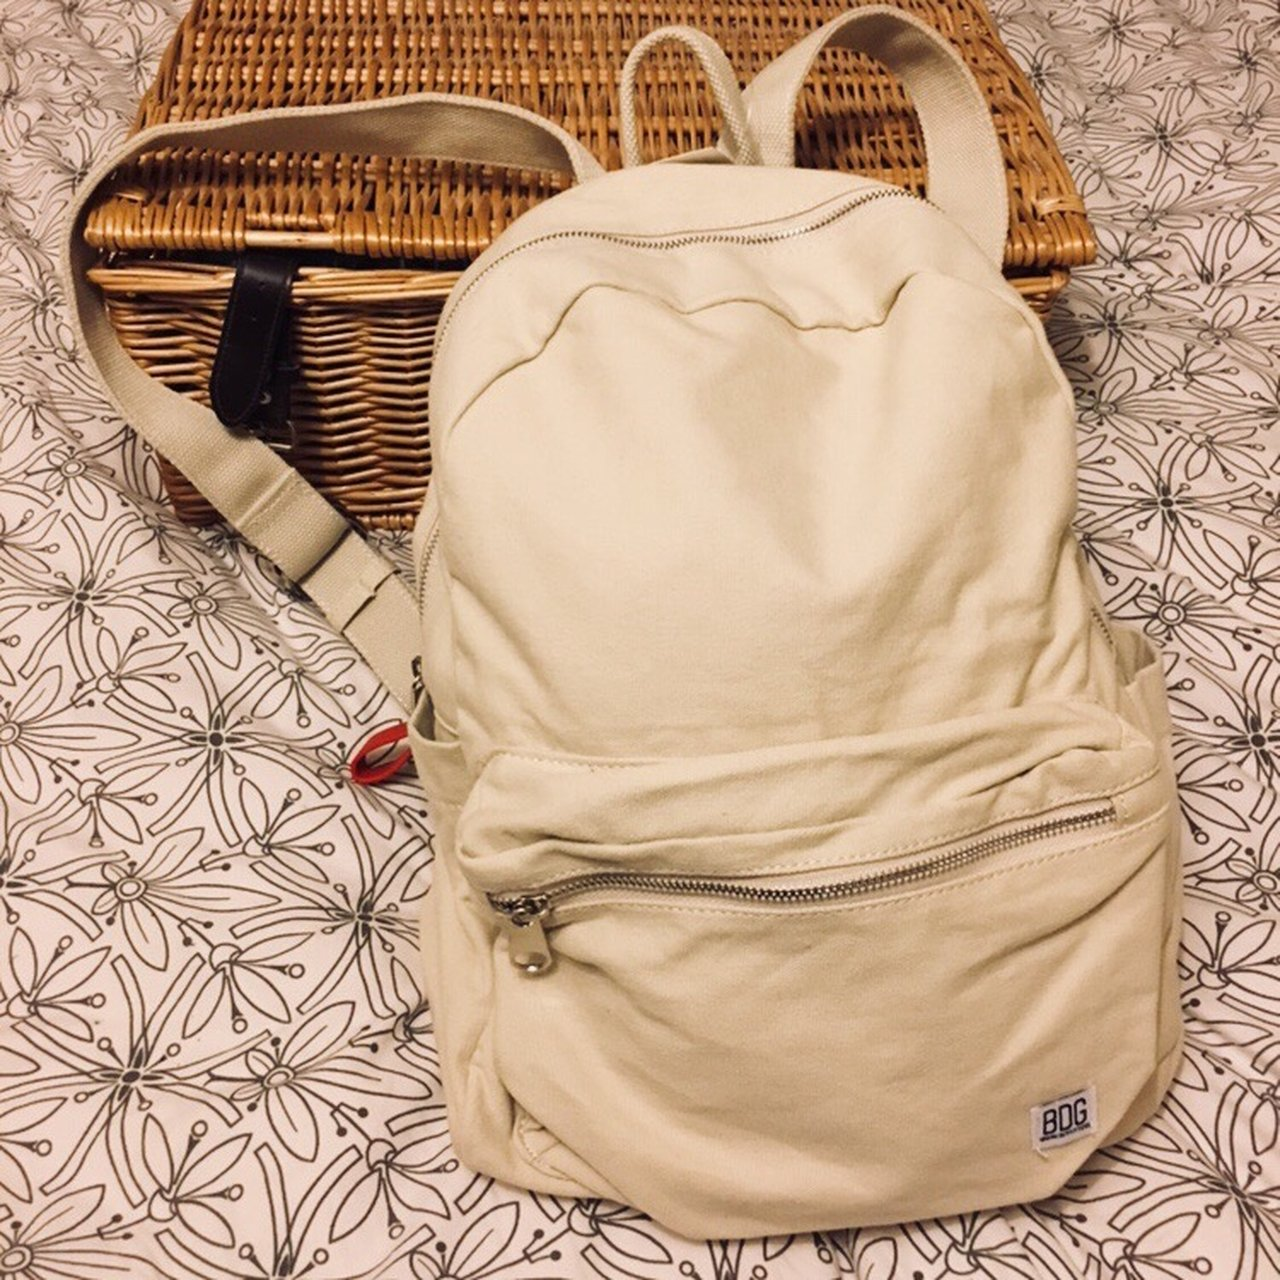 3b33f4b17dad Urban Outfitters BDG canvas backpack - never worn with - Depop